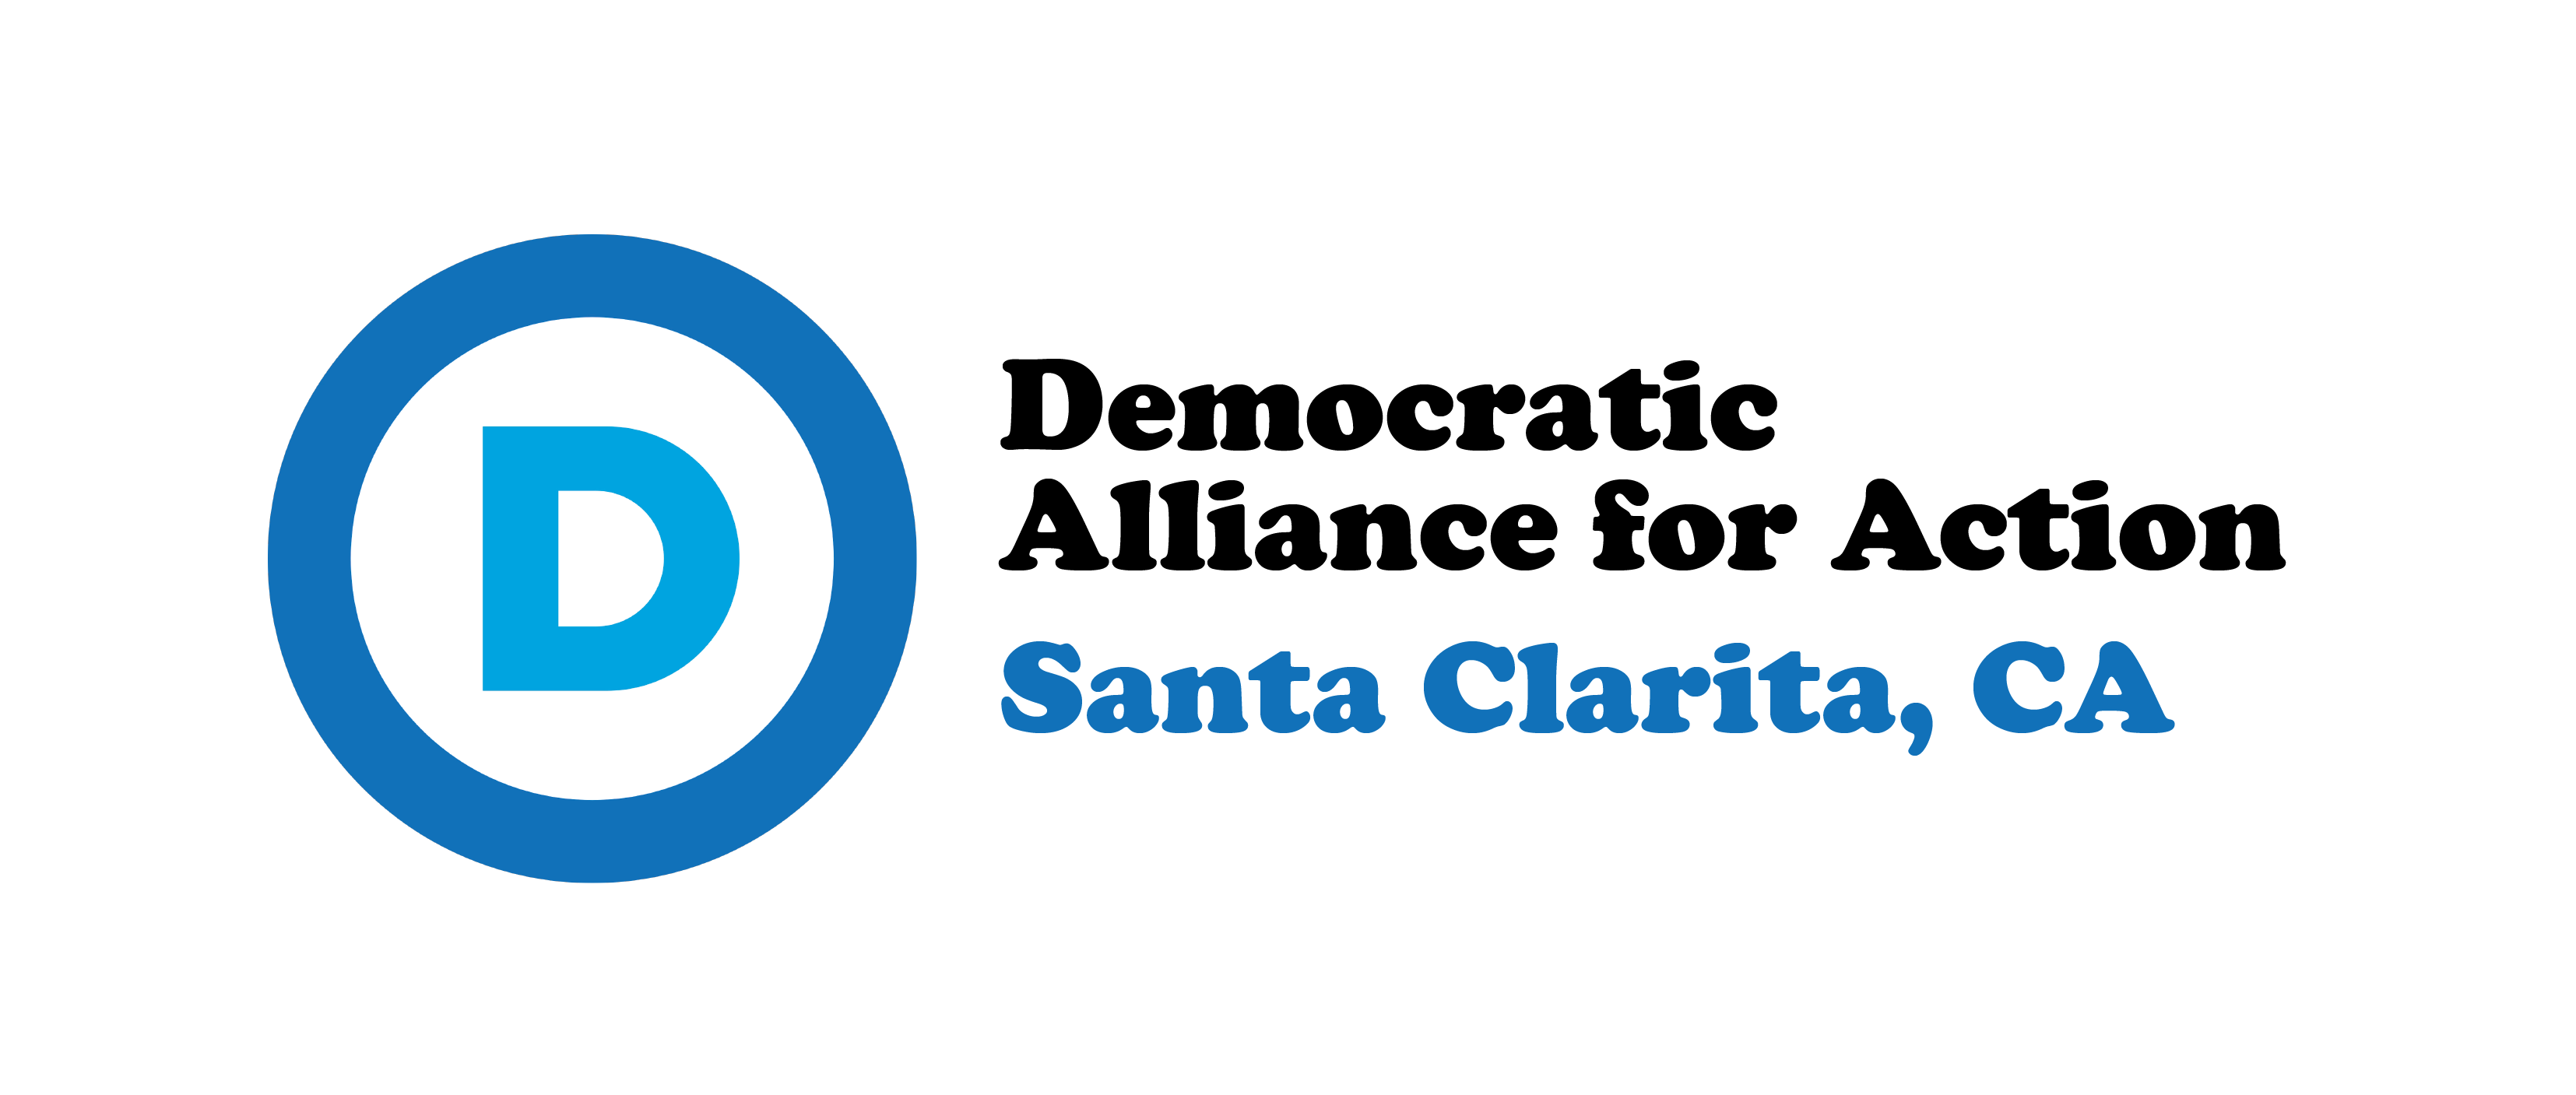 Democratic Alliance for Action of Santa Clarita